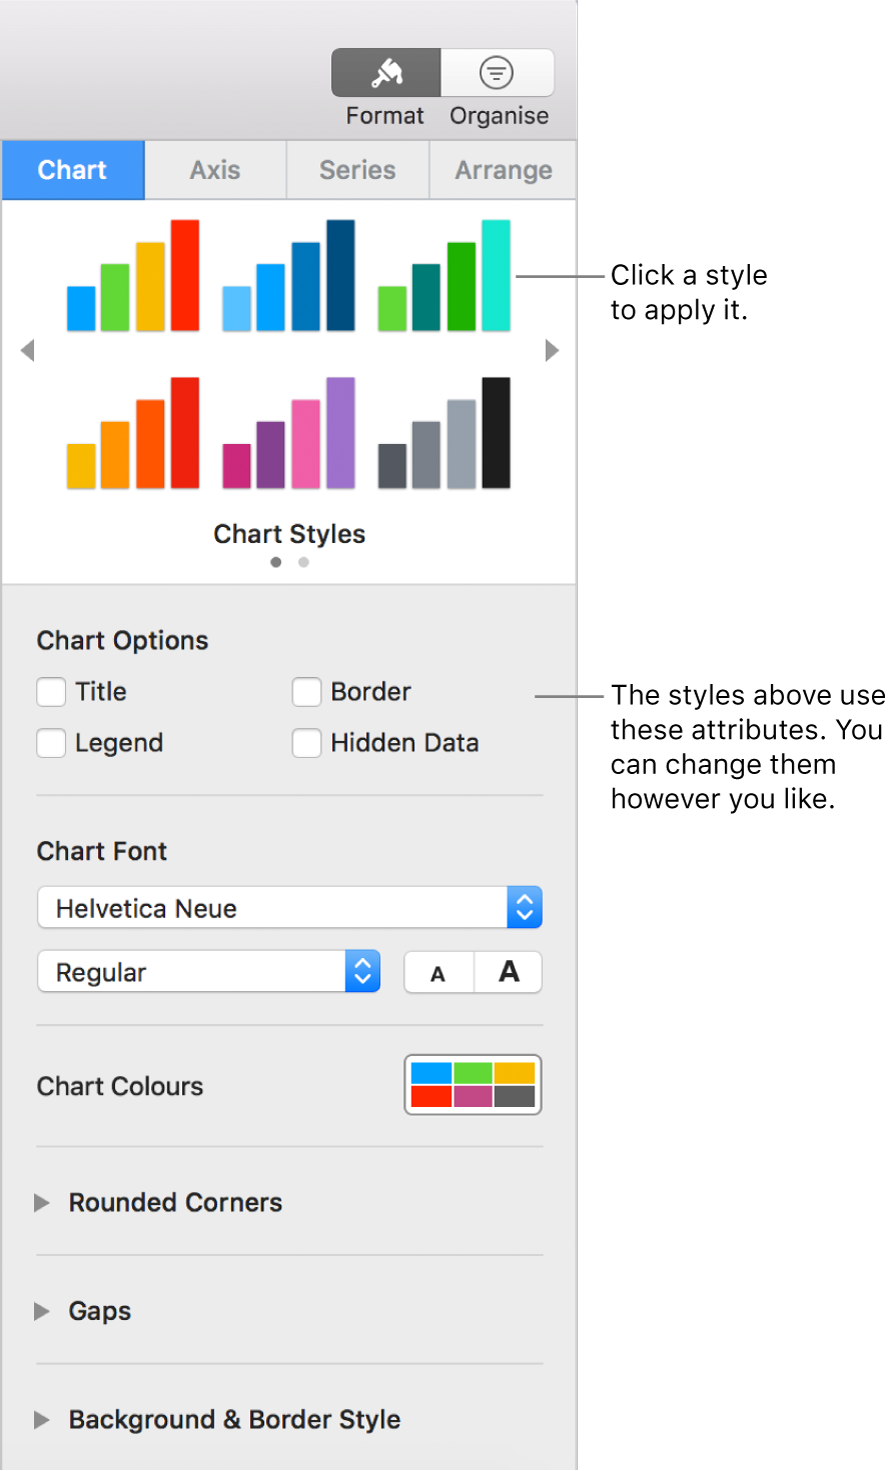 The Formatting sidebar showing the controls for formatting charts.